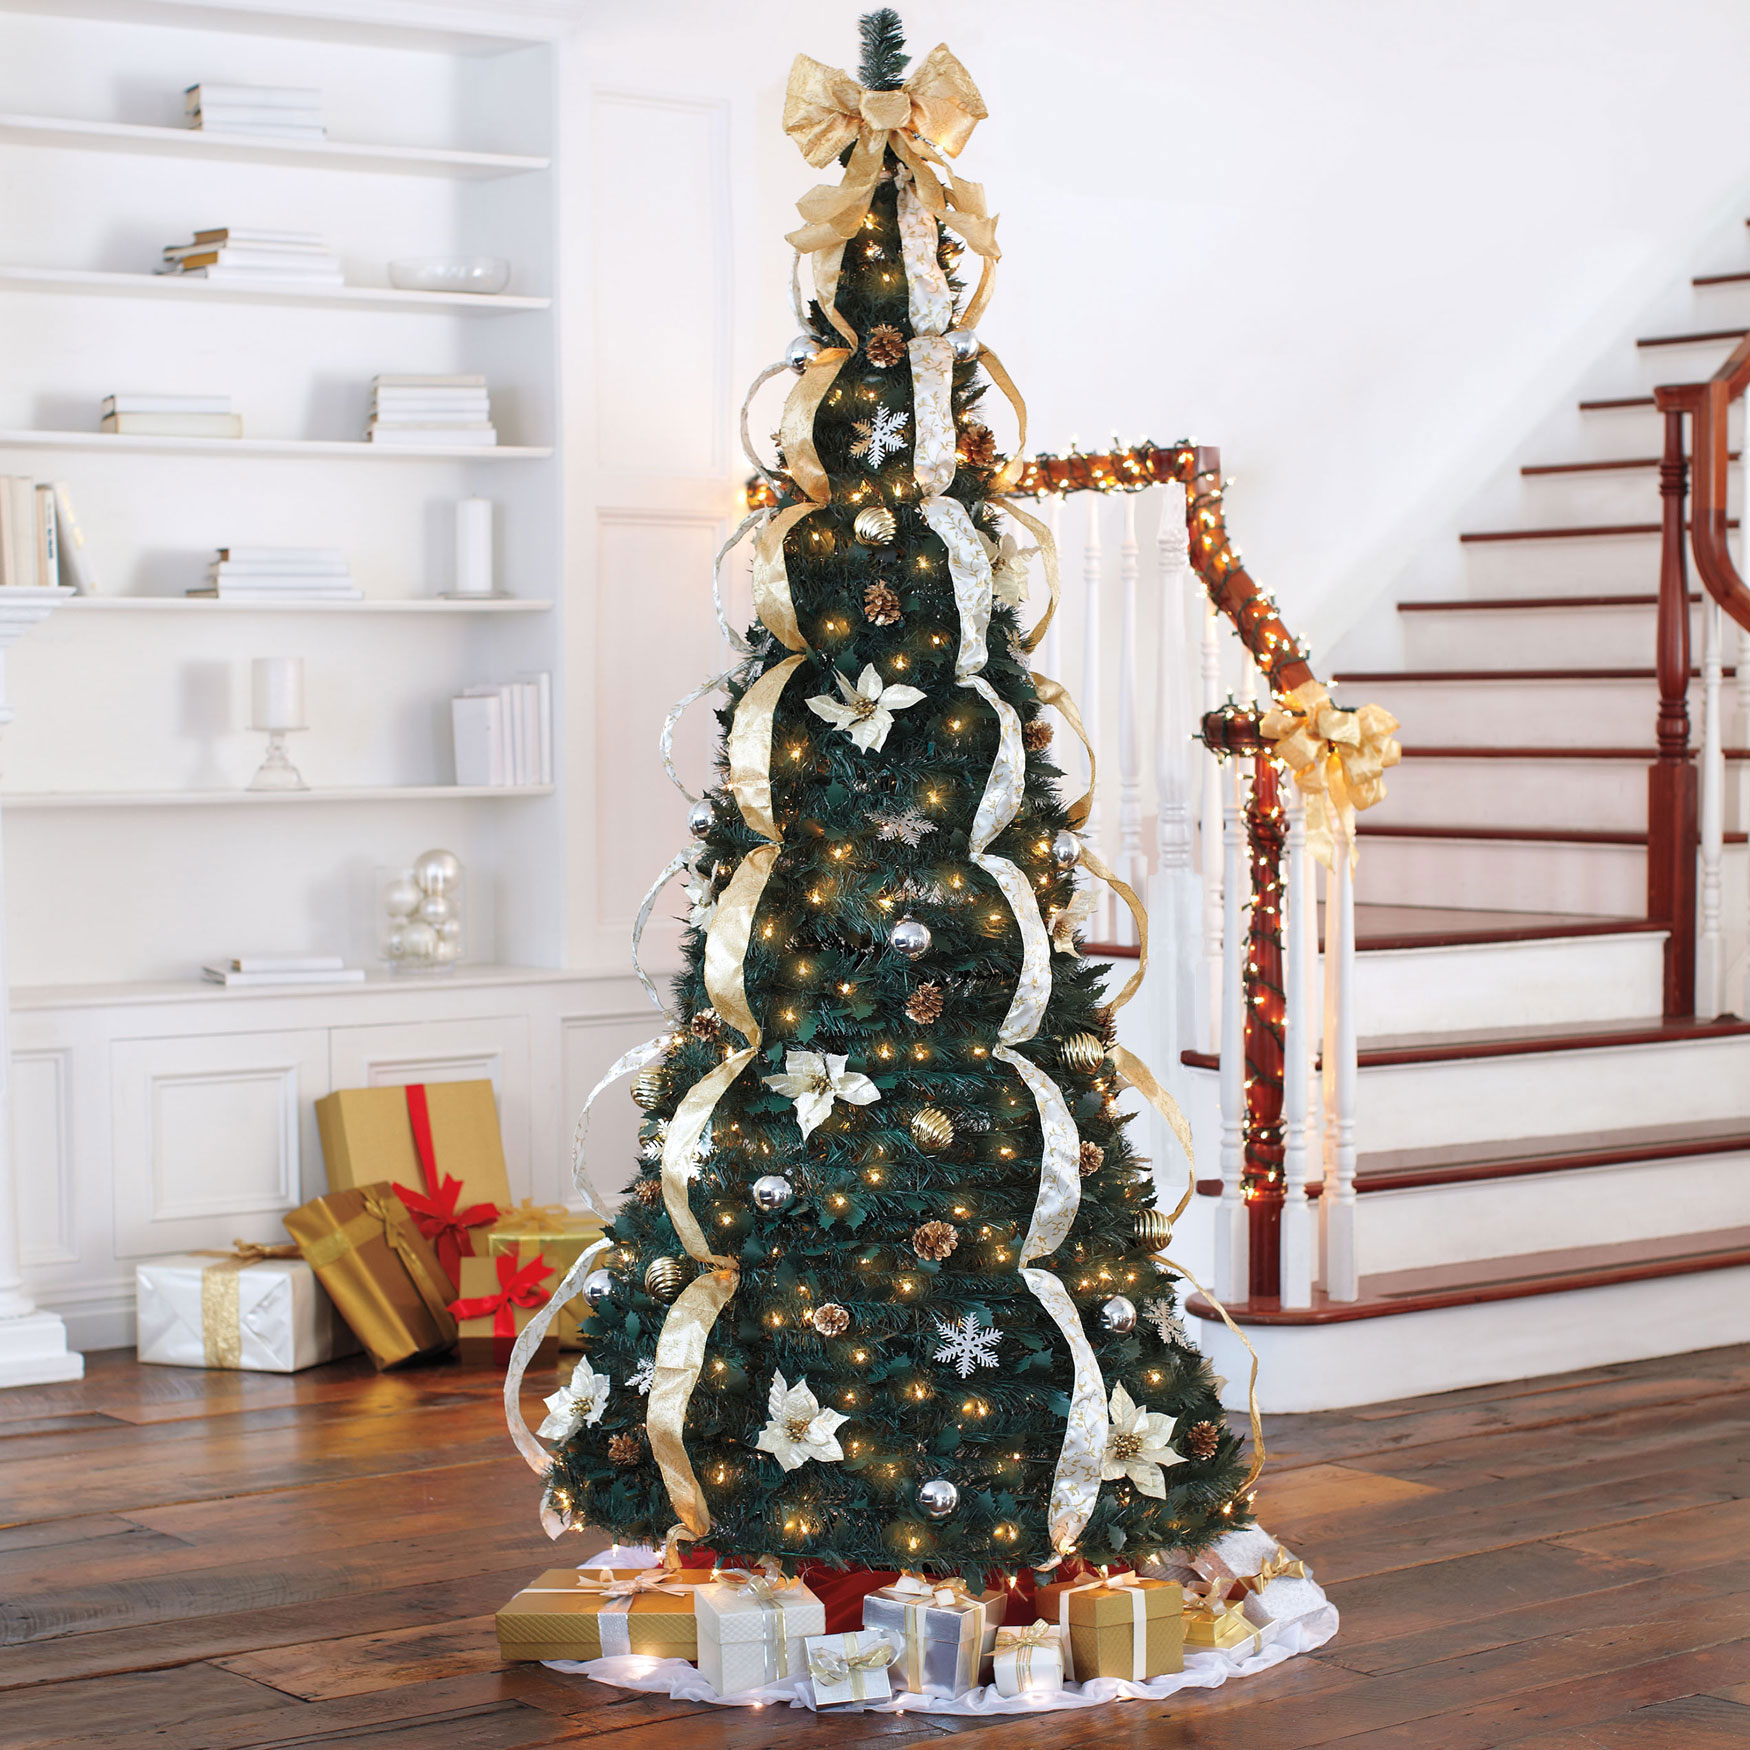 Pop Up Christmas Tree Video: 7½' Deluxe Pop-Up Christmas Tree